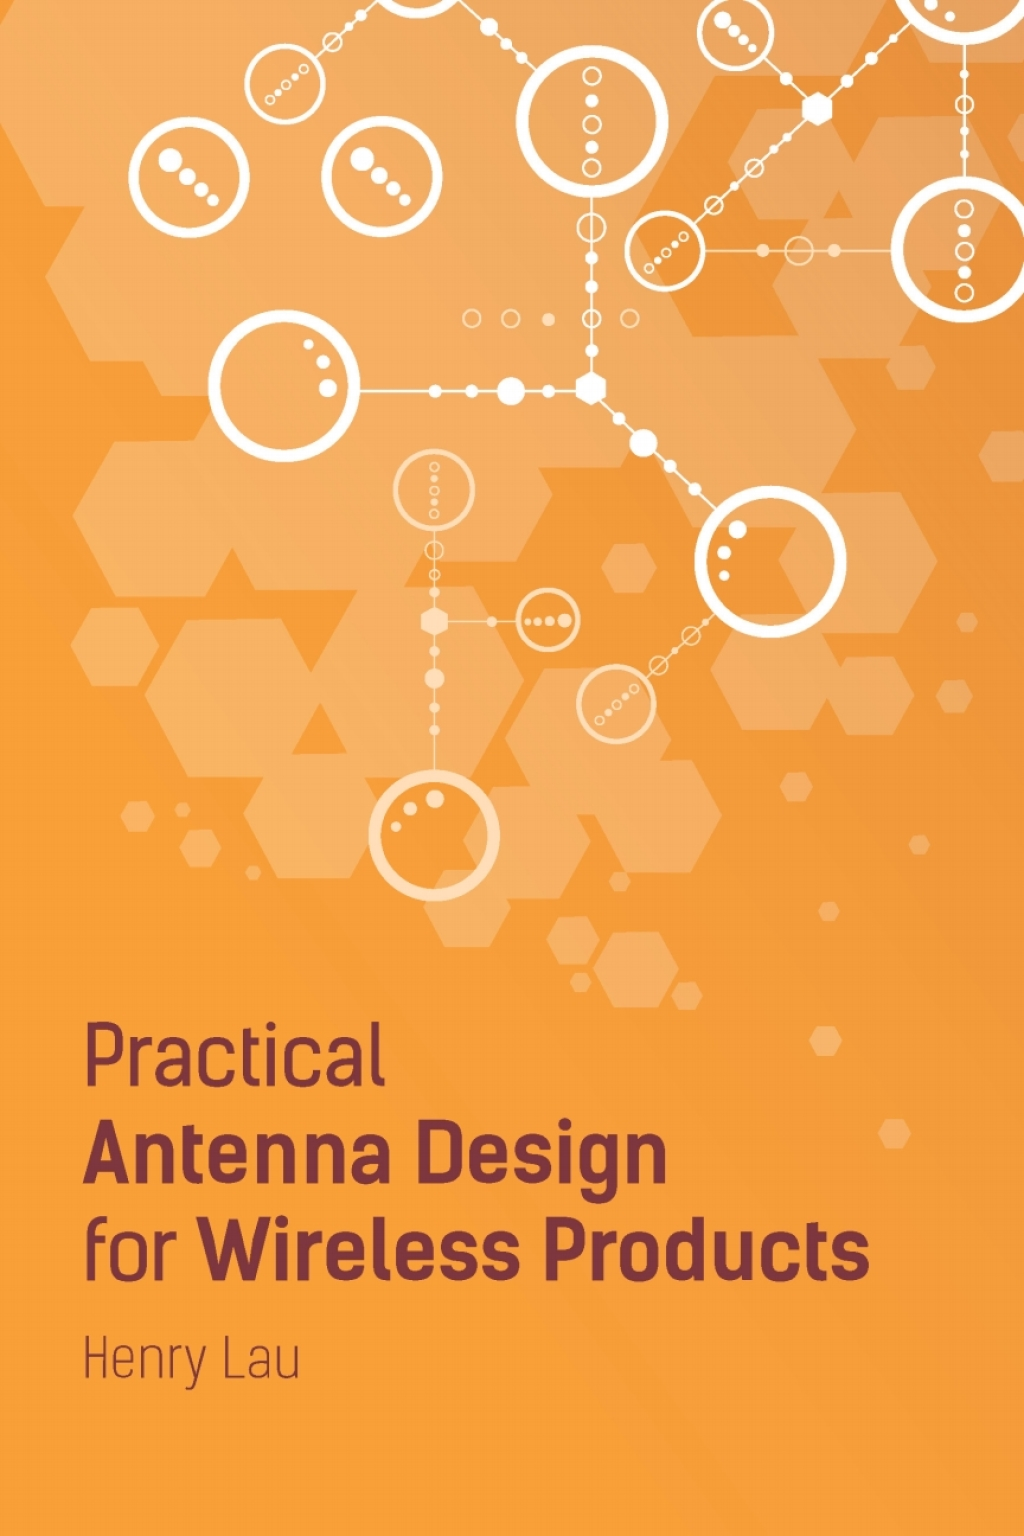 Practical Antenna Design for Wireless Products (eBook) (9781630813260) photo